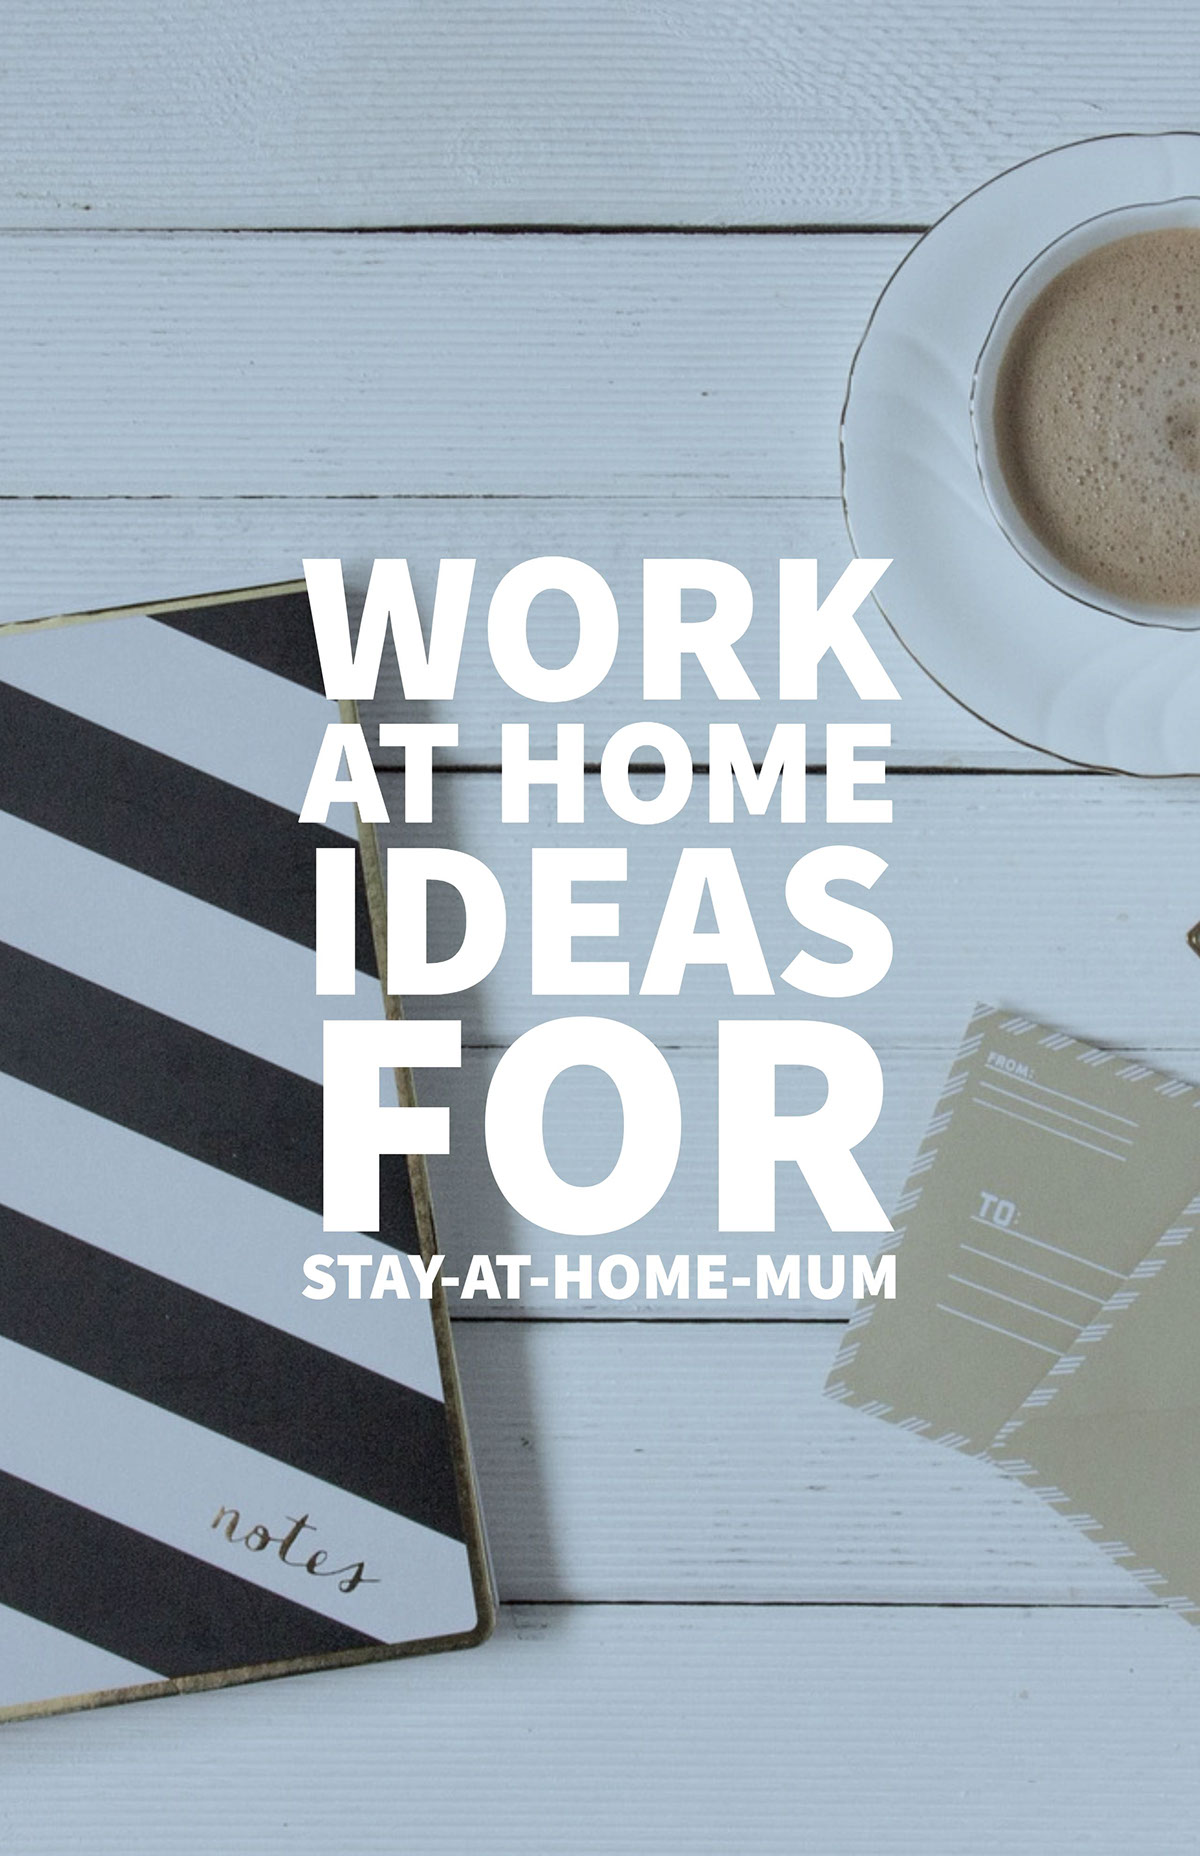 Work at Home Ideas for Stay-At-Home-Mum